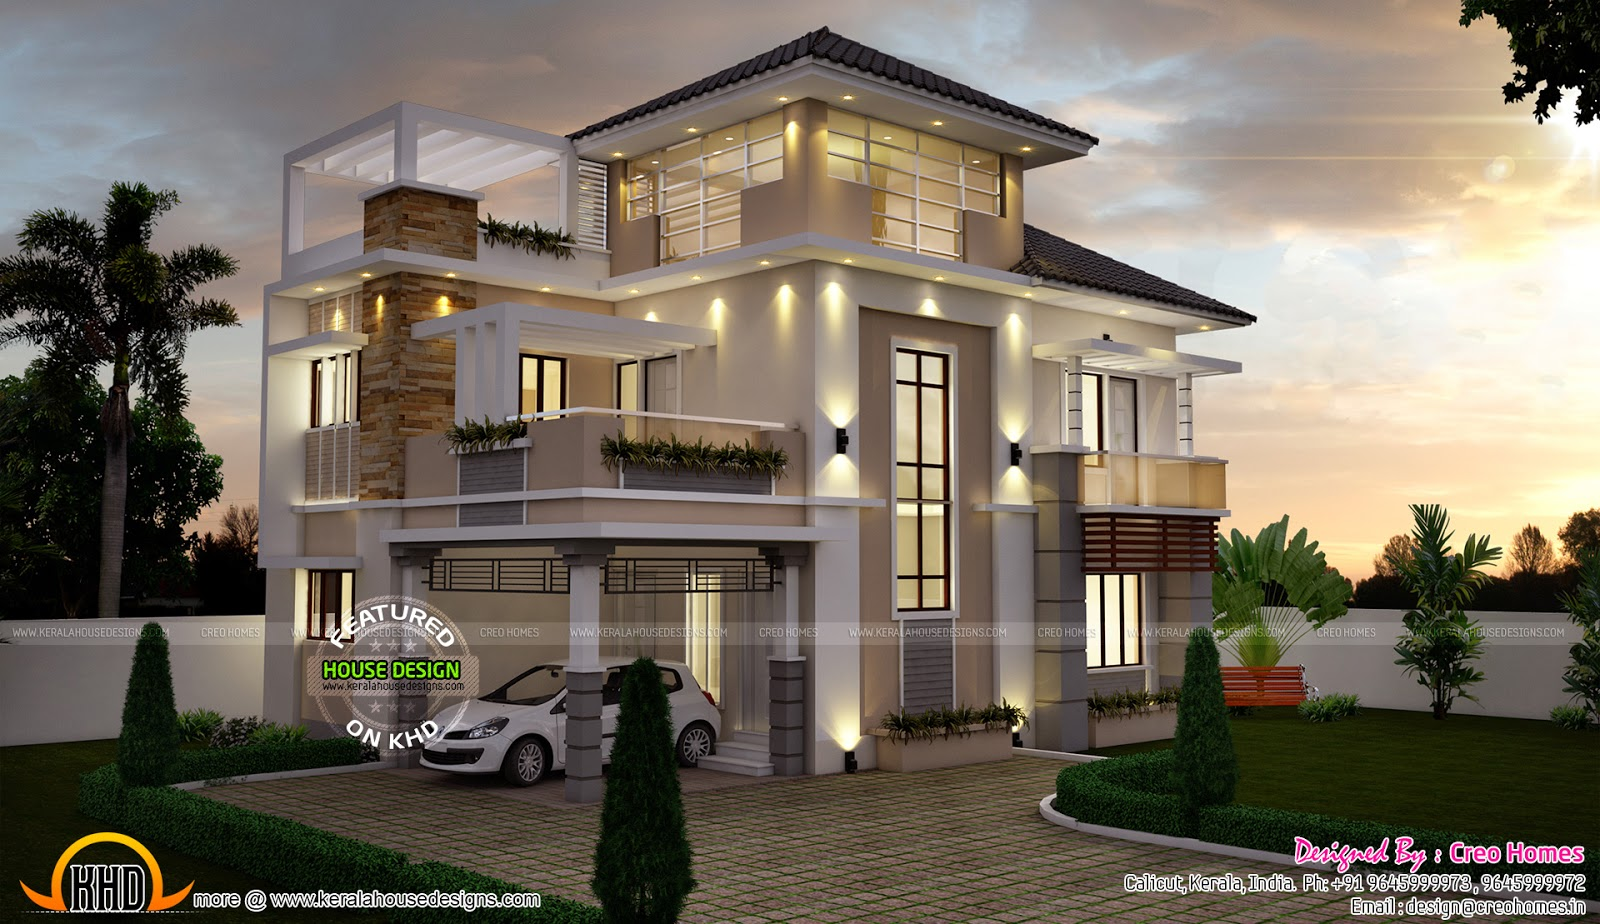 Super stylish contemporary house kerala home design and for Modern home styles designs